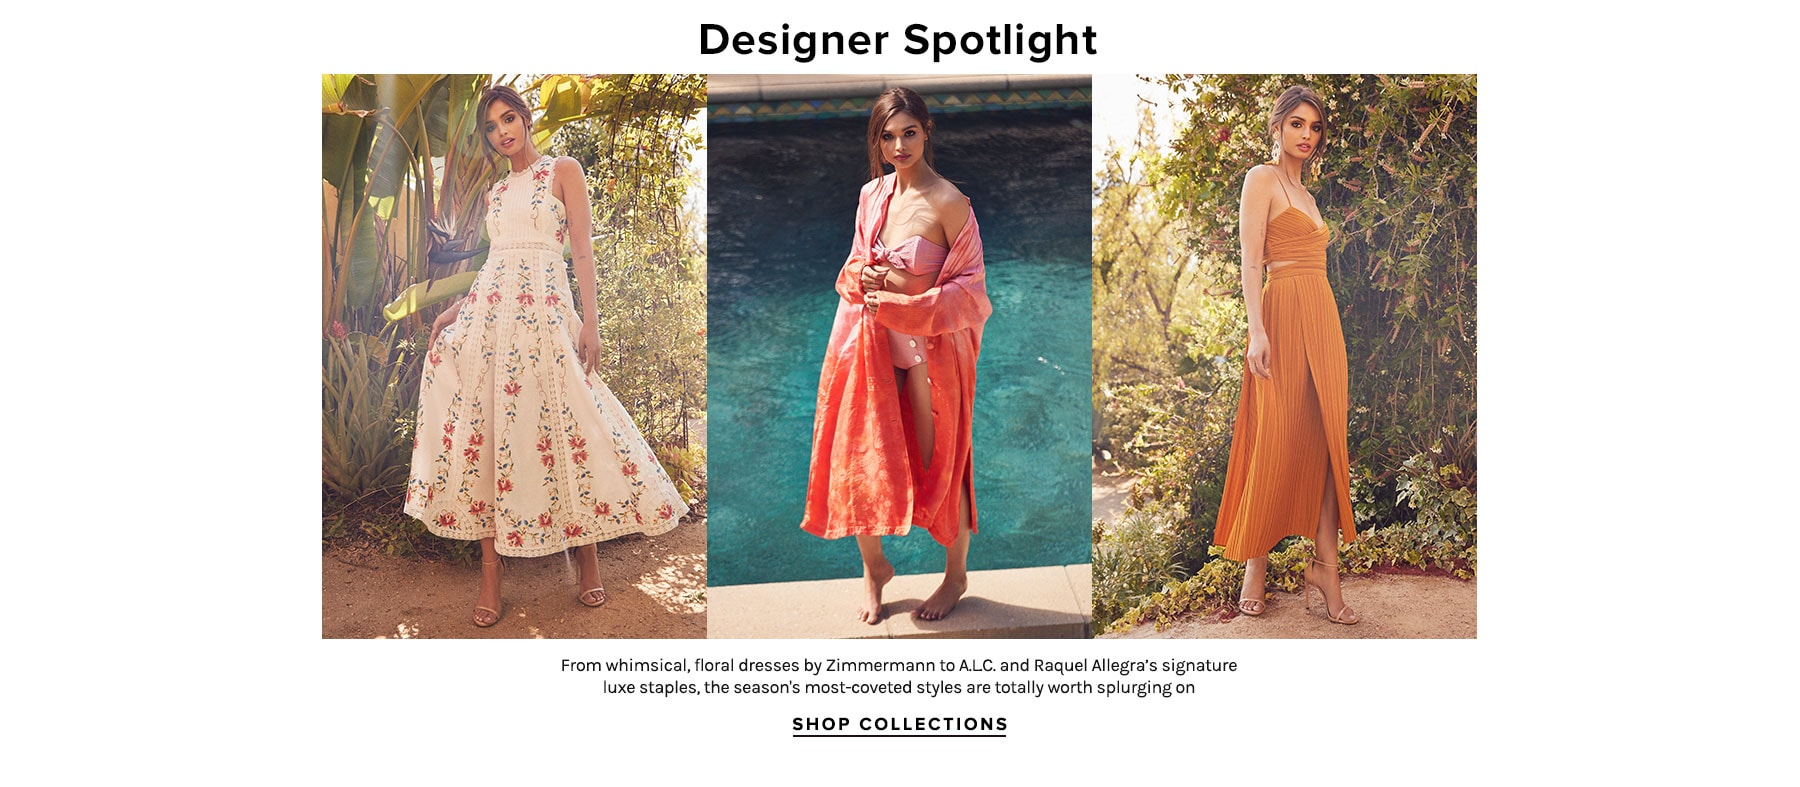 Designer Spotlight. From whimsical, floral dresses by Zimmermann to Raquel Allegra's signature luxe staples, the season's most-coveted styles are totally worth splurging on. Shop Collections.